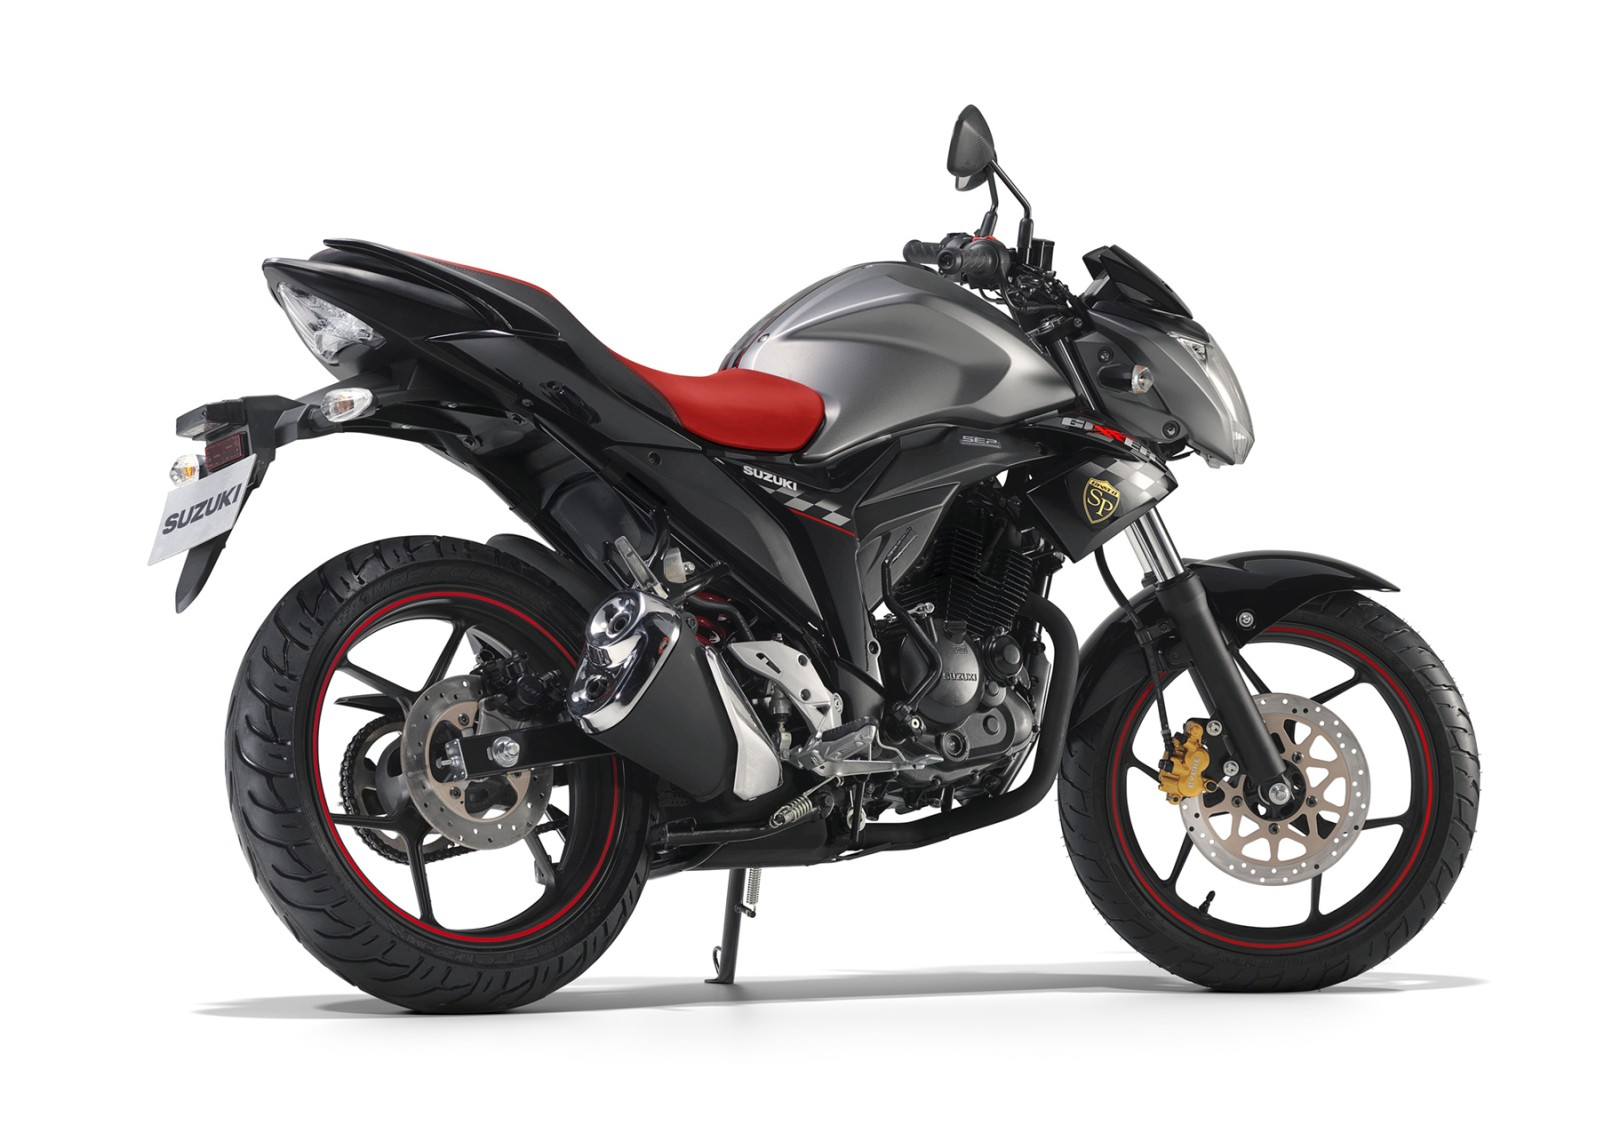 Suzuki Gixxer  Price In Phillipines